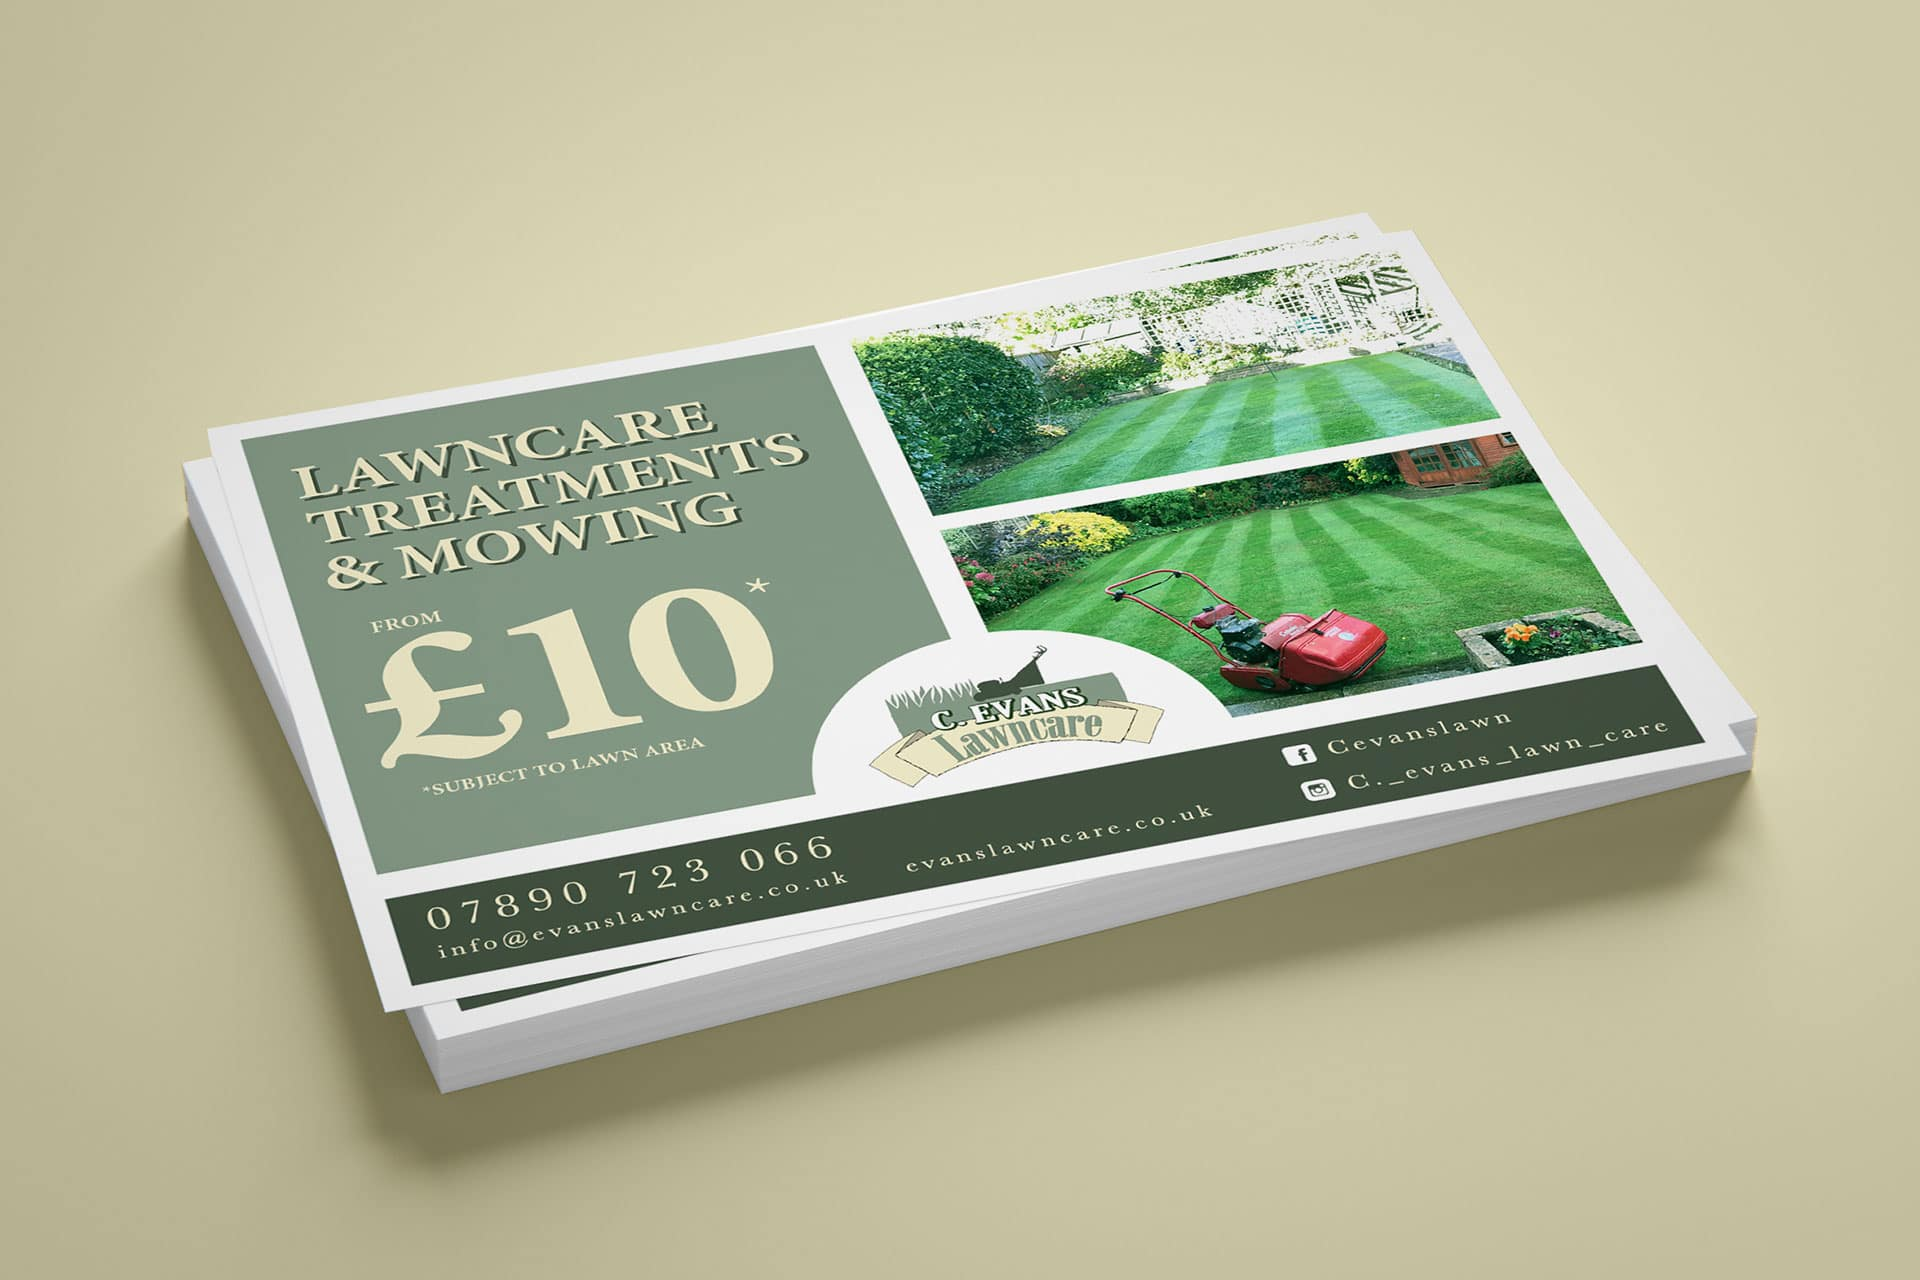 C. Evans Lawncare flyers